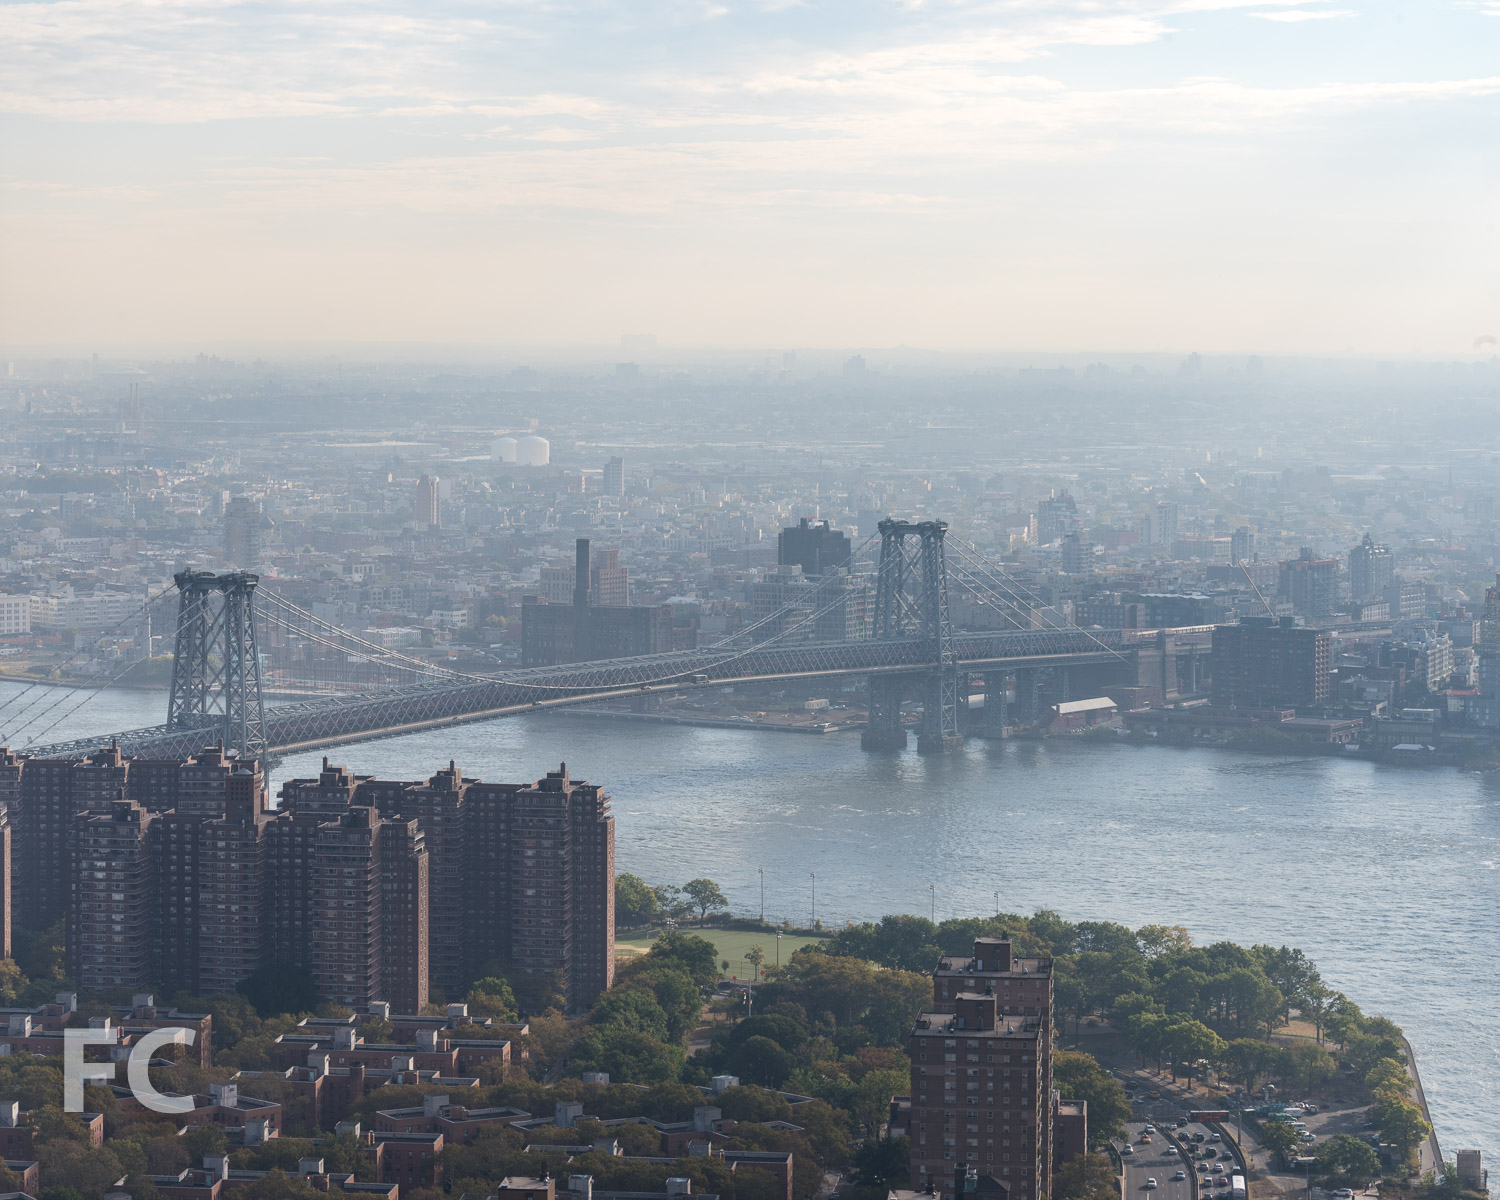 View northeast towards Williamsburg and the Williamsburg Bridge from the 58th floor.